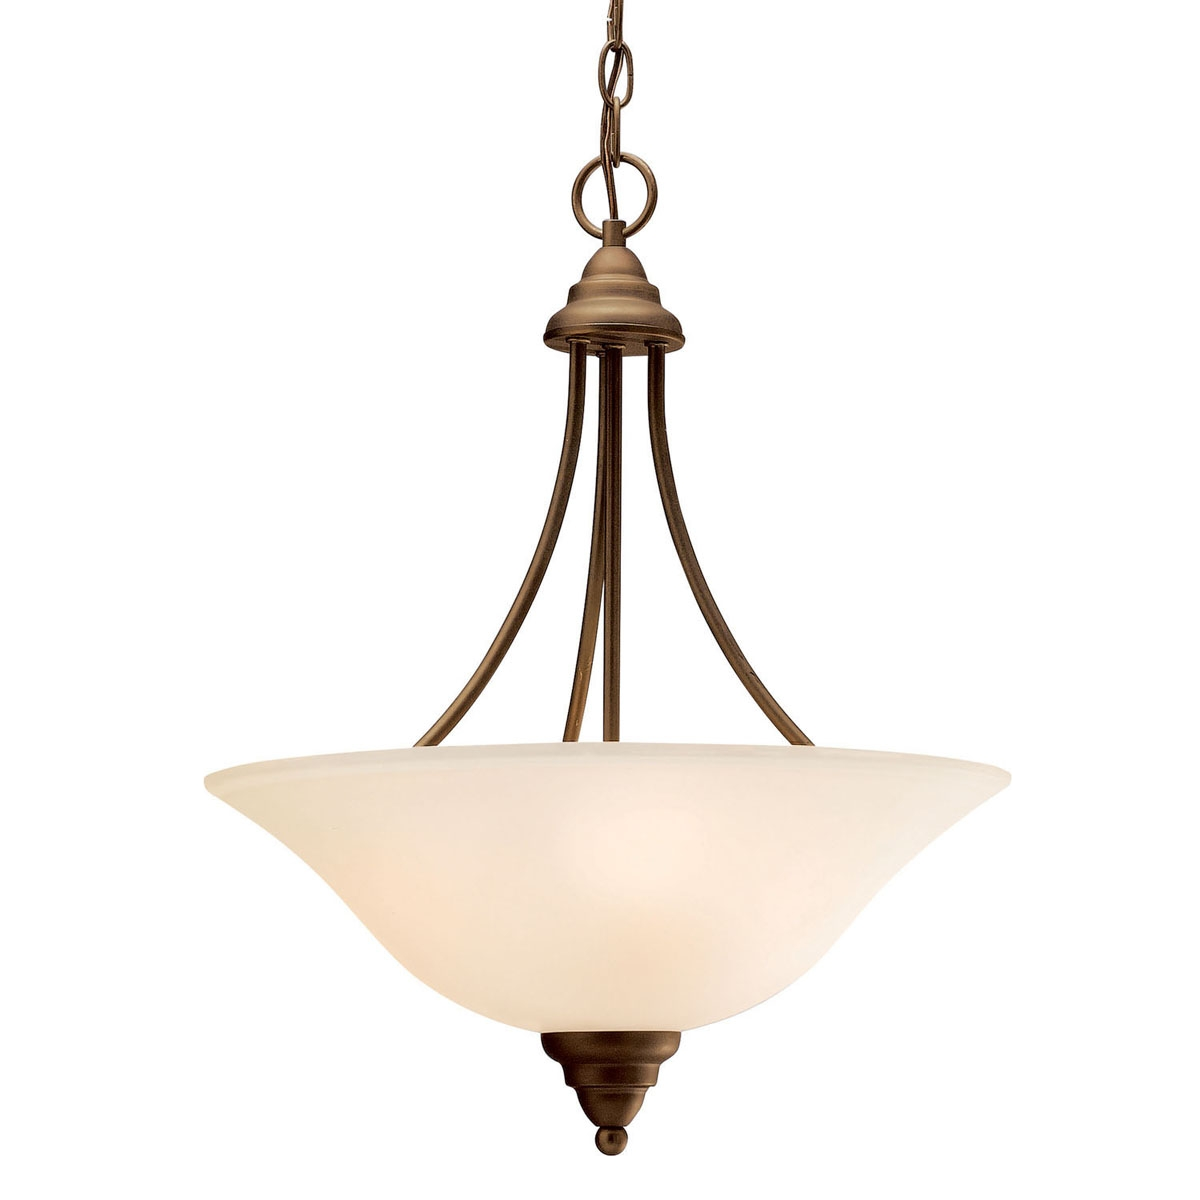 Affordable Timeless 3 Light Inverted Pendant In Olde Bronze Intended For Inverted Pendant Chandeliers (Image 5 of 25)